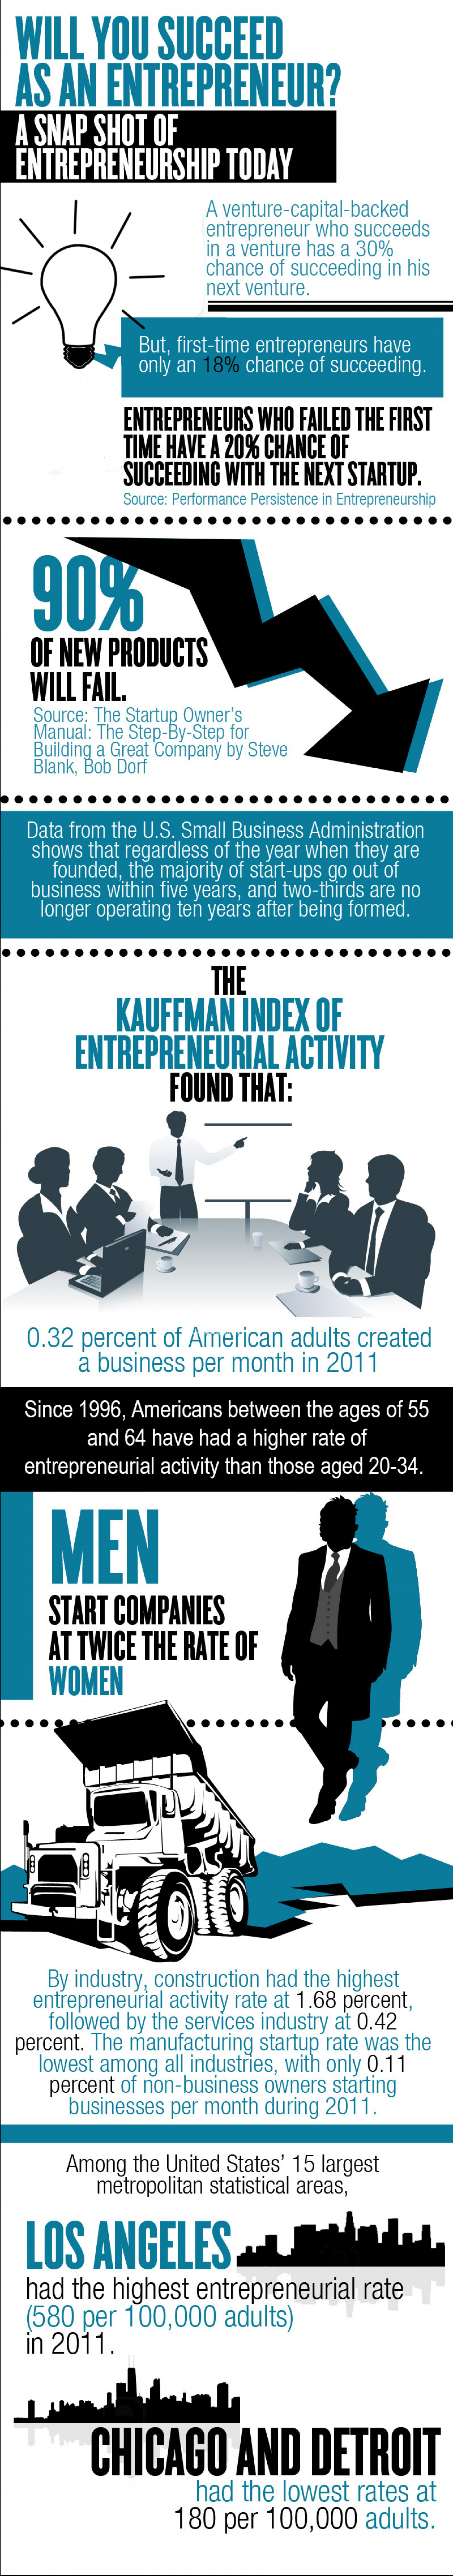 The State of Entrepreneurship Today Infographic